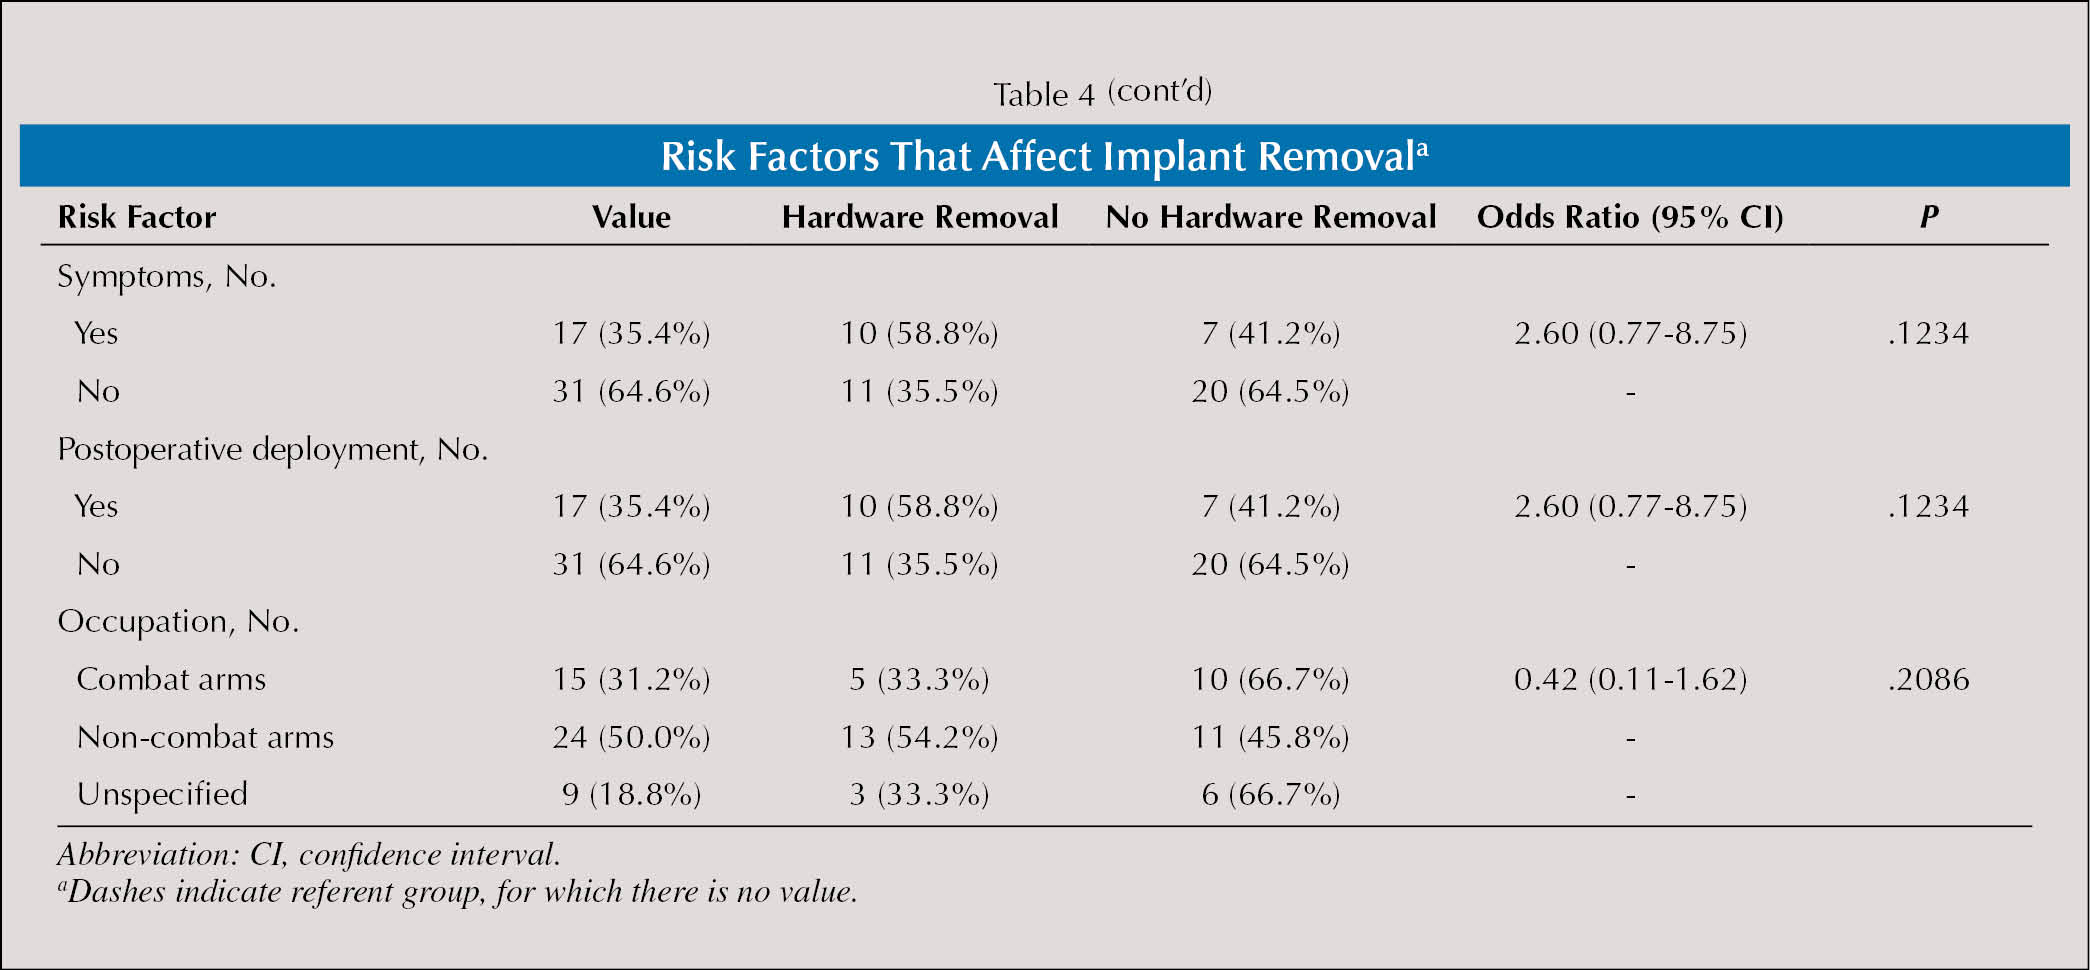 Risk Factors That Affect Implant Removala